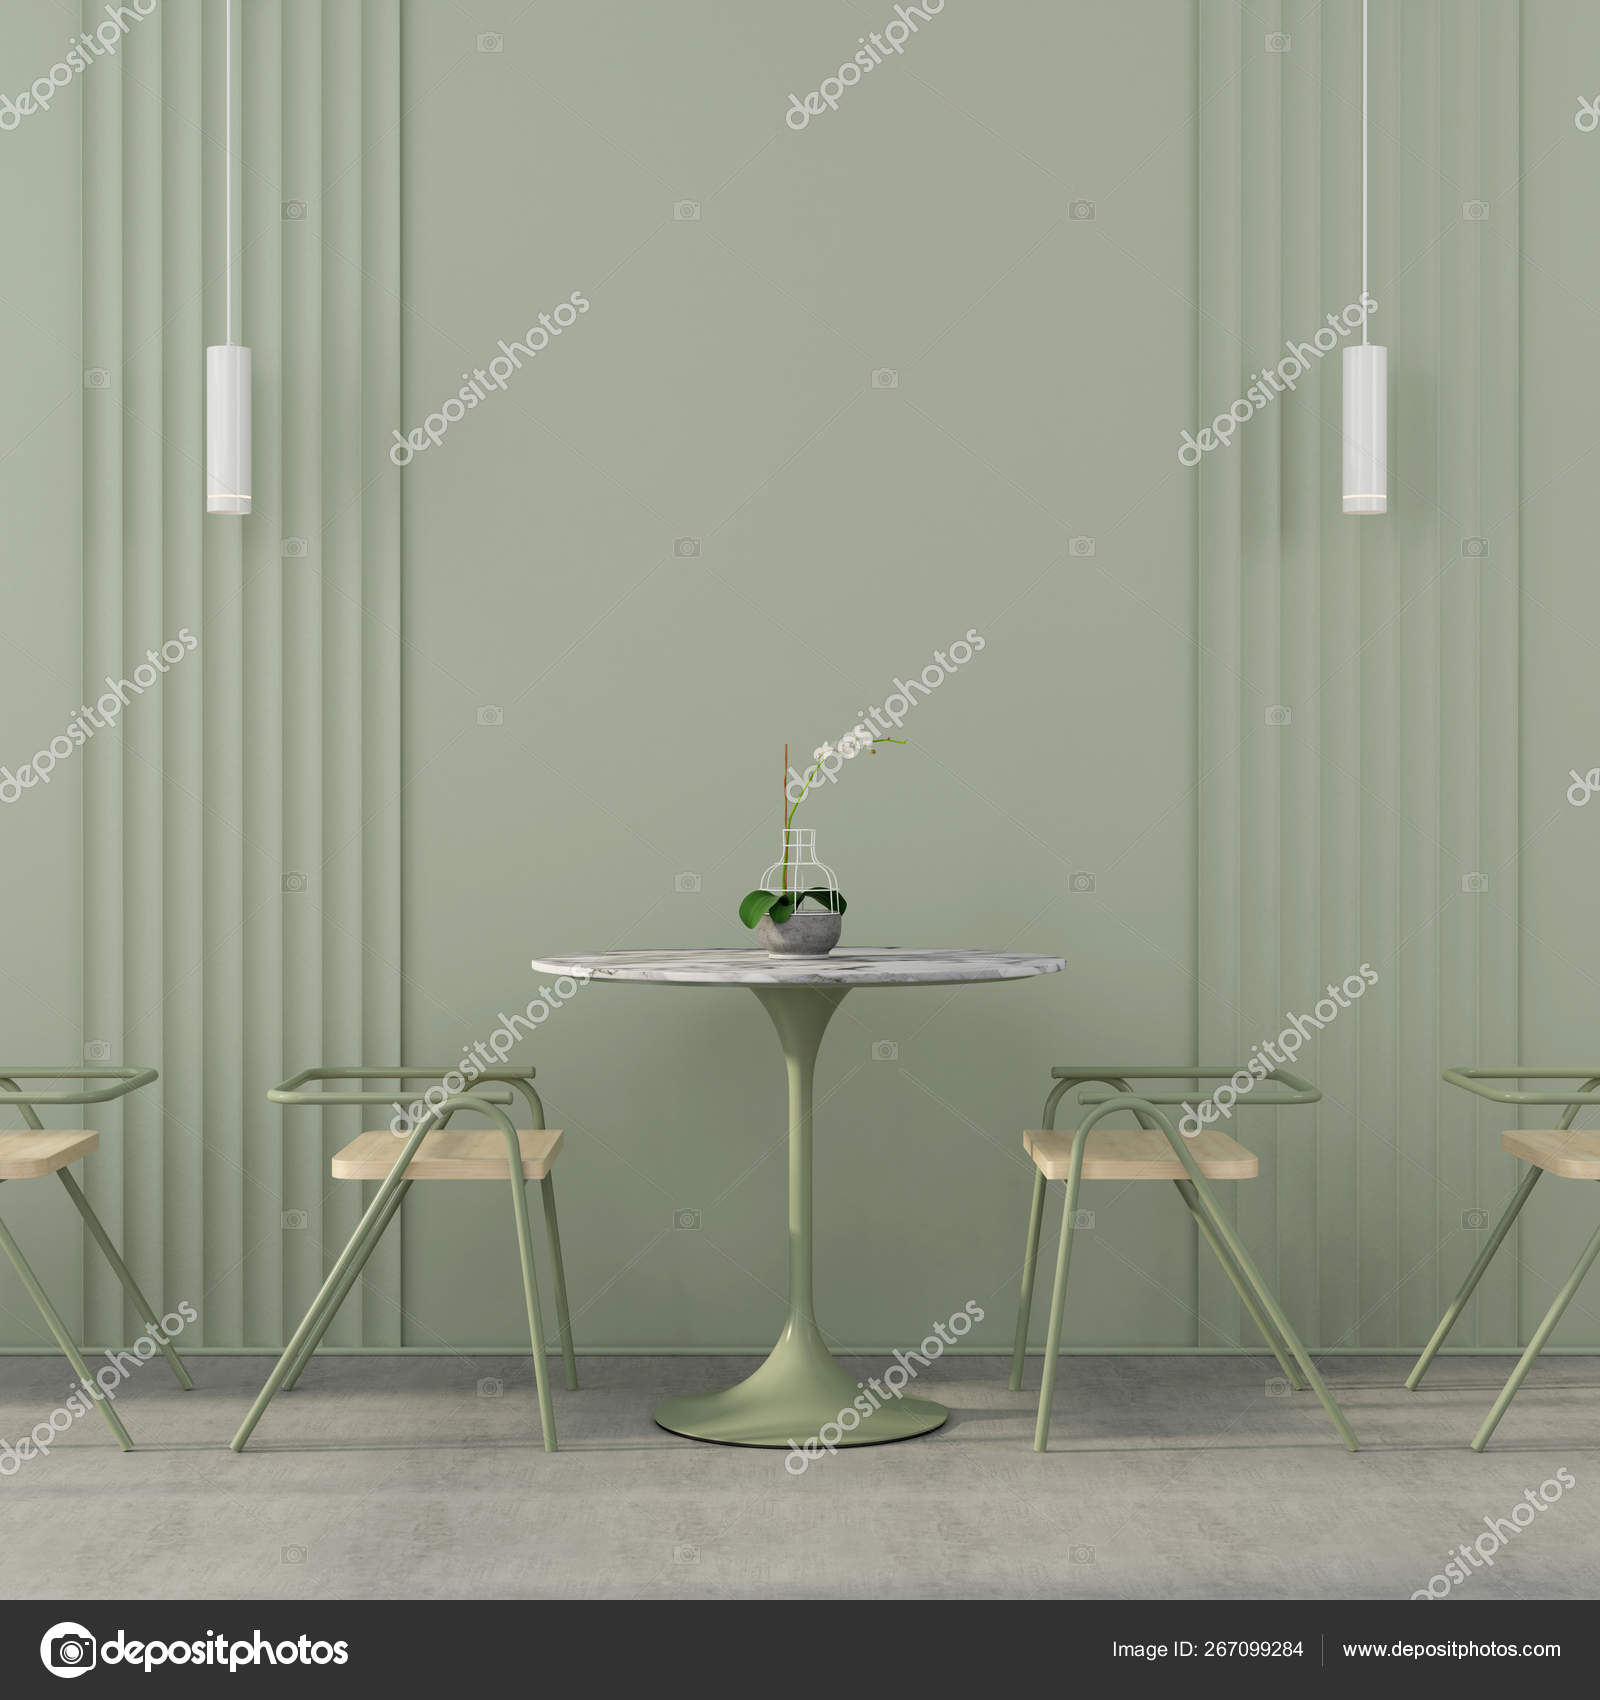 Cafe Interior In Green With Concrete Floor Stock Photo C Jzhuk 267099284